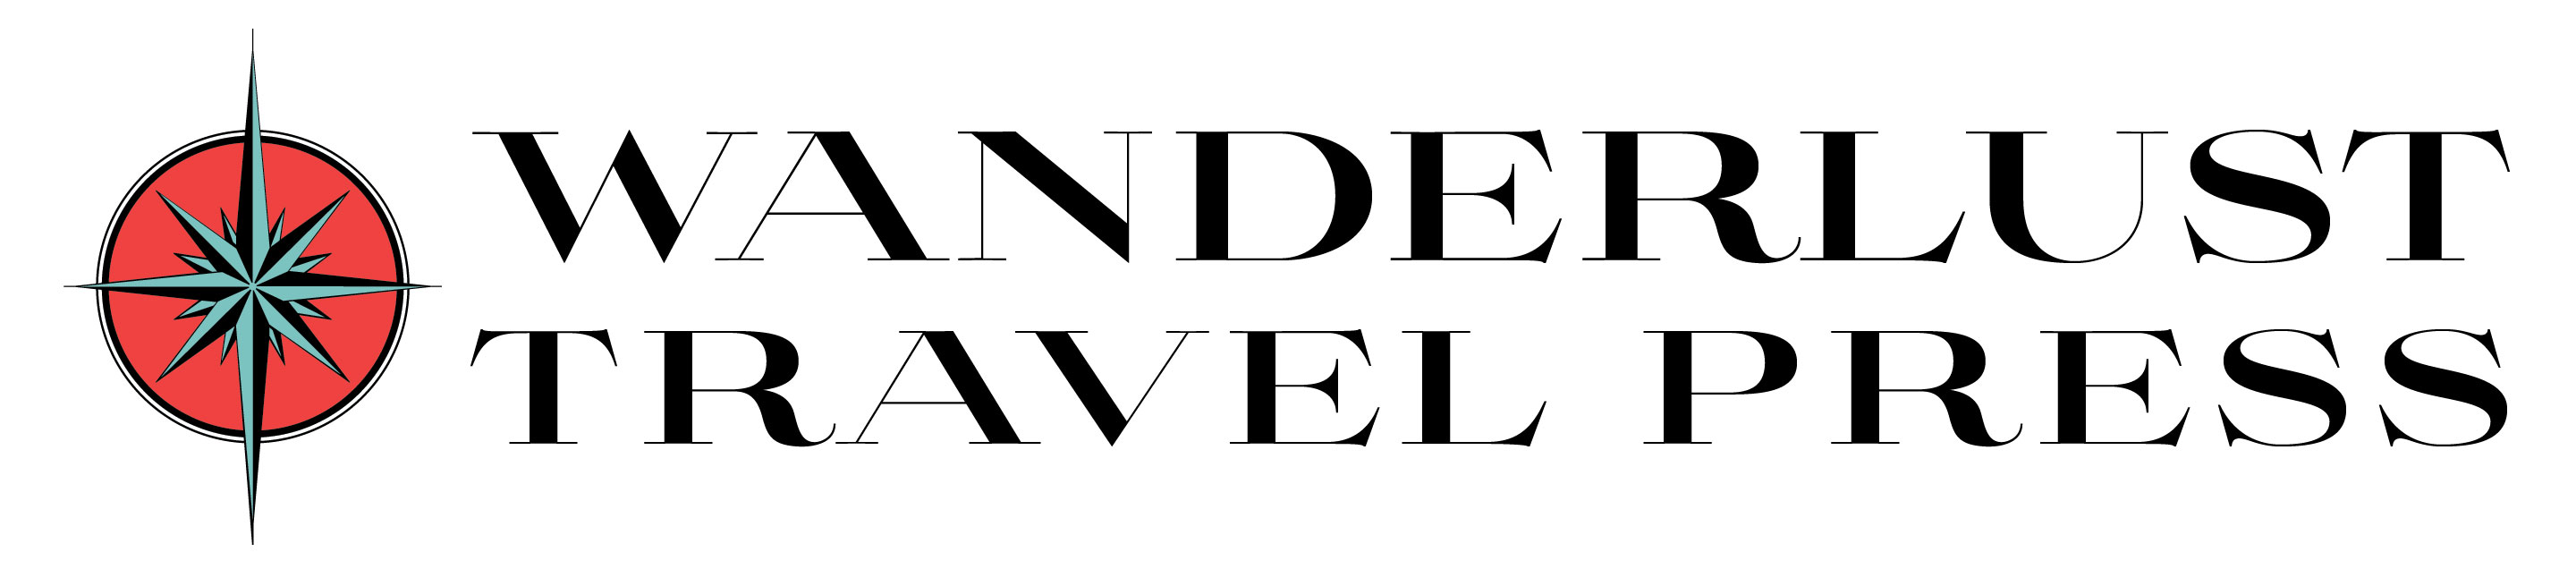 Wanderlust Travel Press logo